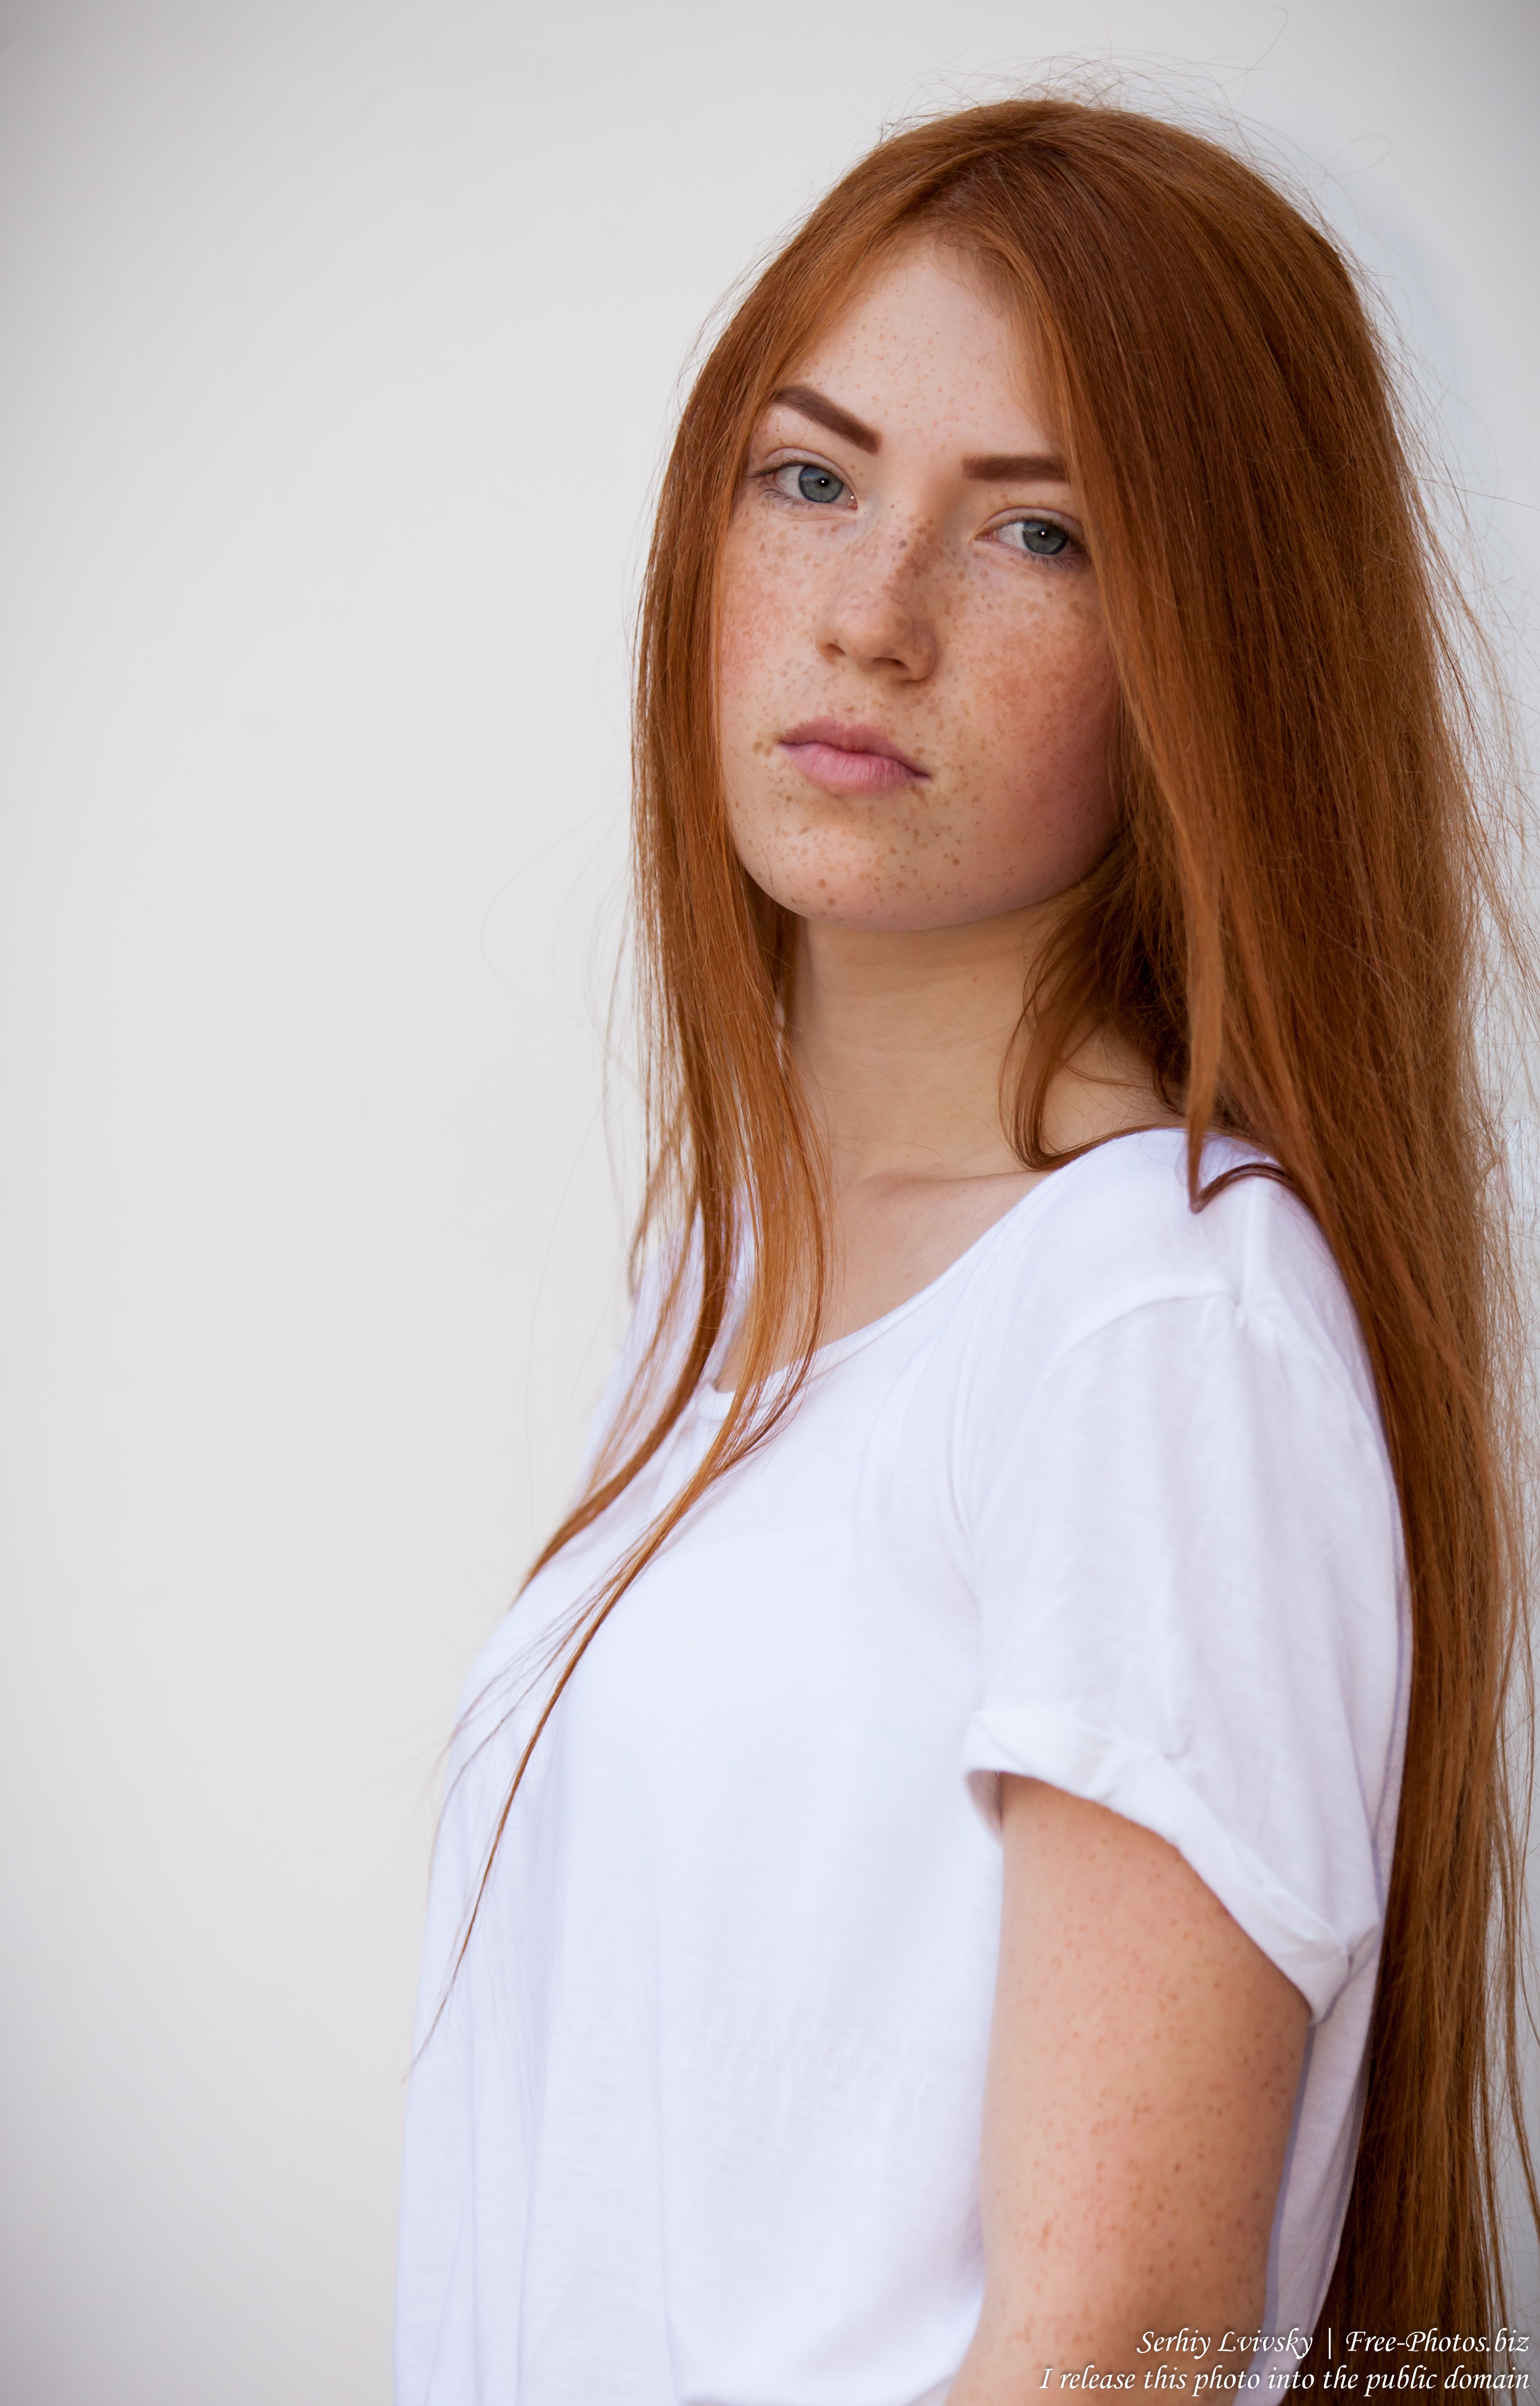 a 15-year-old red-haired Catholic girl photographed by Serhiy Lvivsky in August 2015, picture 3